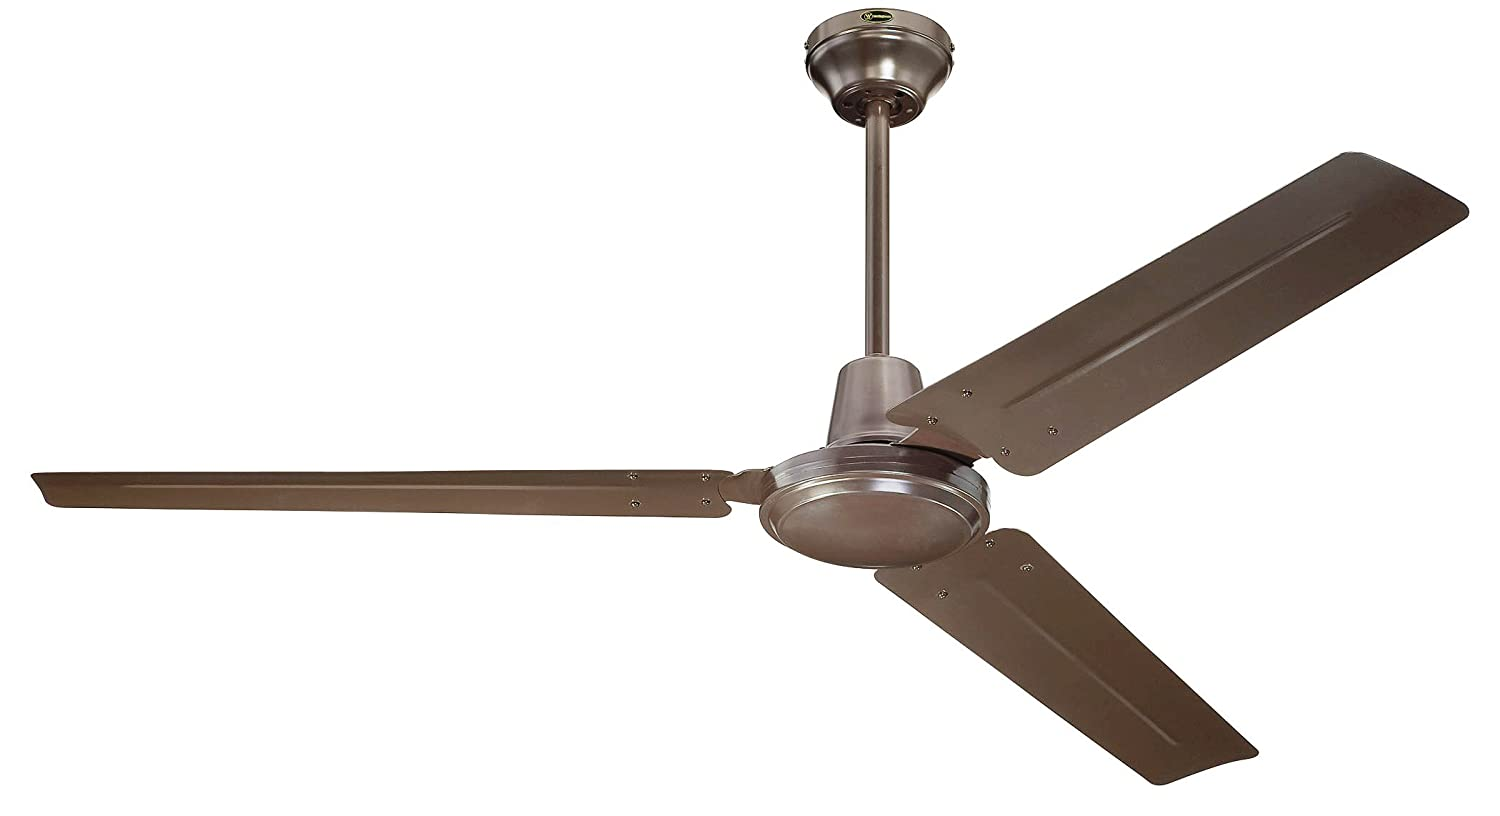 co wire fans fan tulum loose ceiling without in with downrod white industrial smsender ceilings lights light